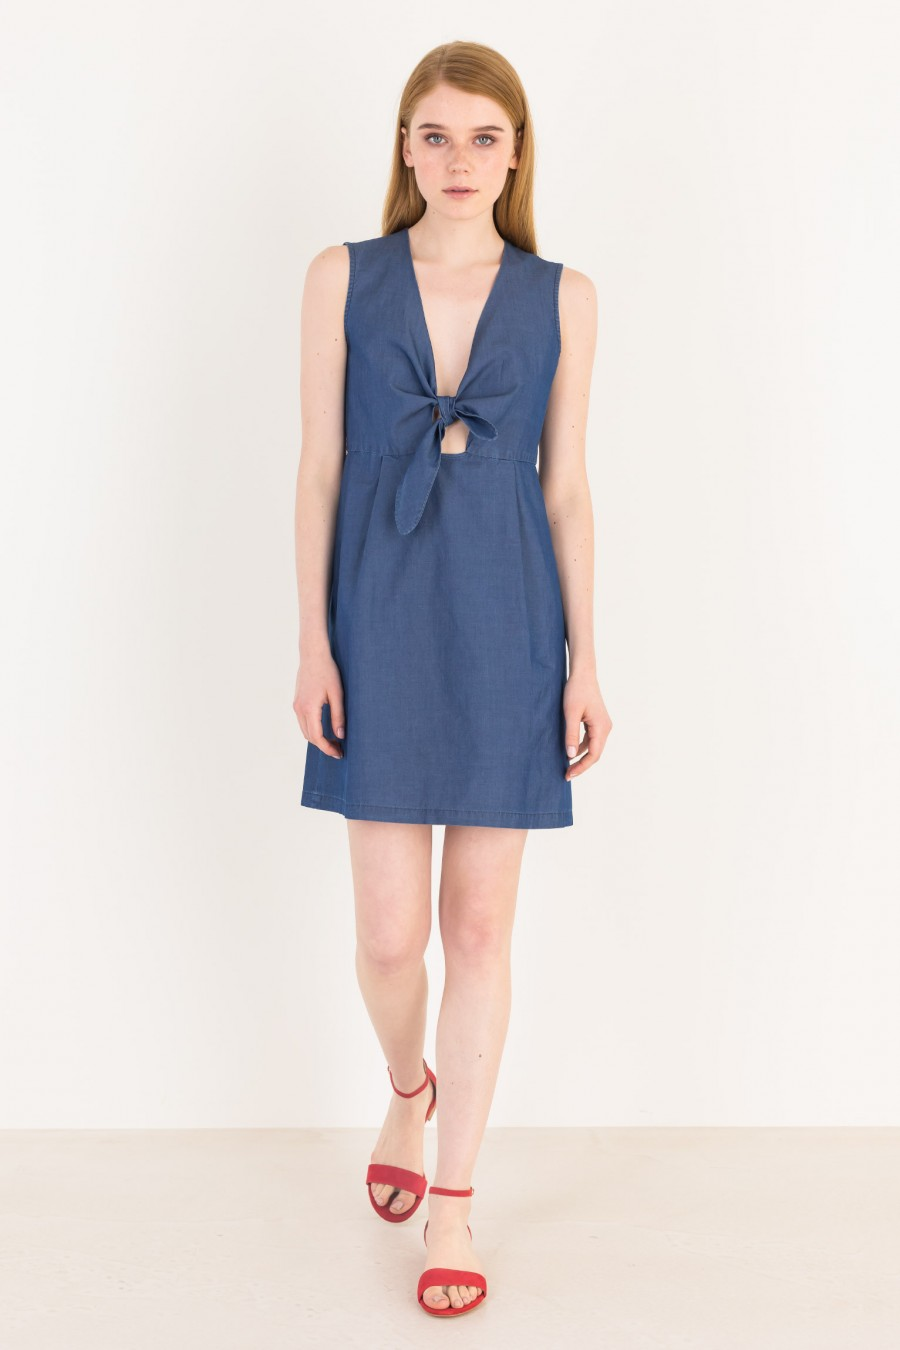 Cotton dress with knot